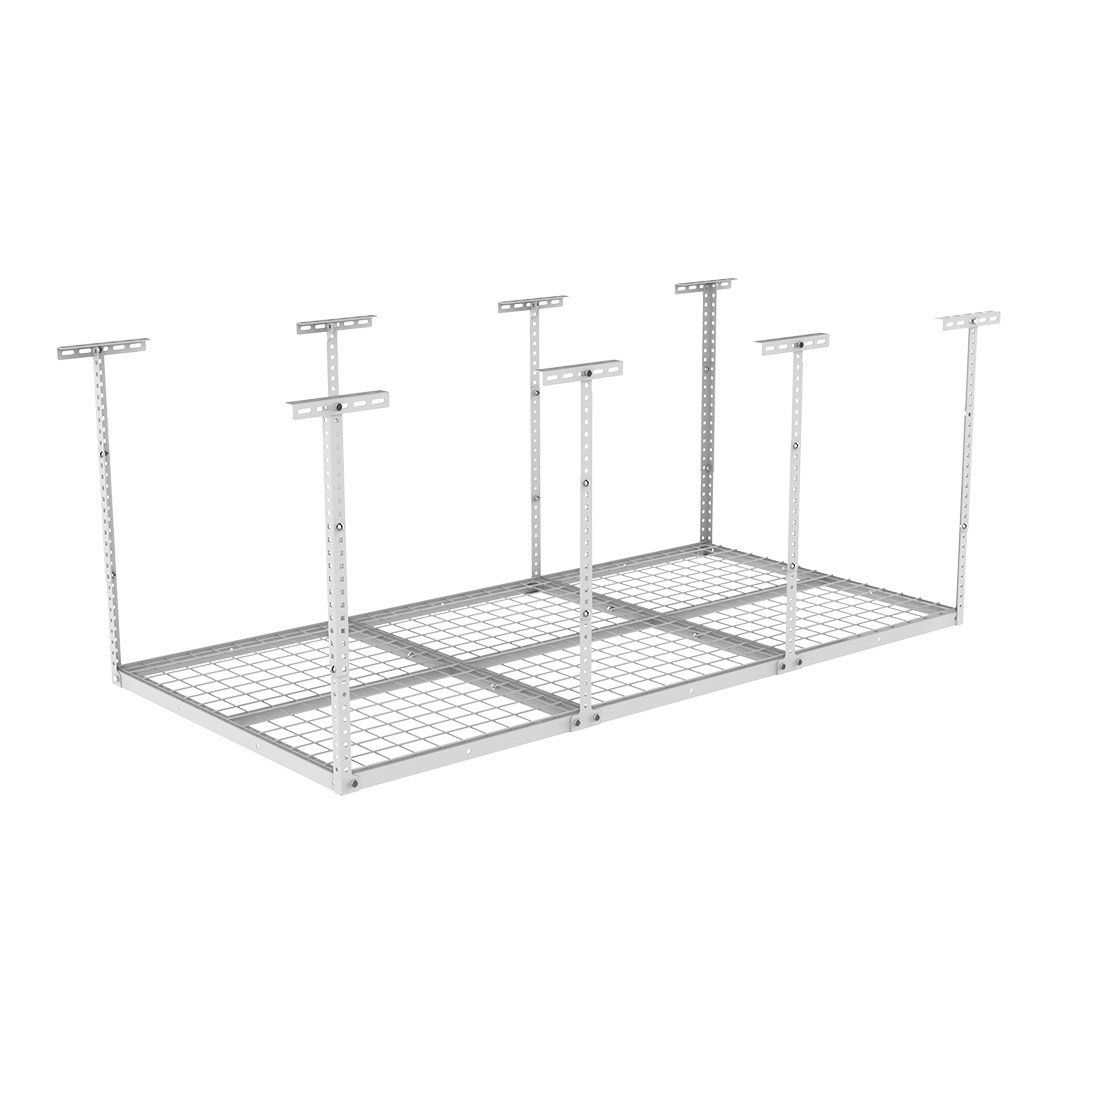 "Fleximounts 72"" Length x 36"" Width x 40"" Height Adjustable Ceiling Storage Rack 3x6 Overhead Garage white"